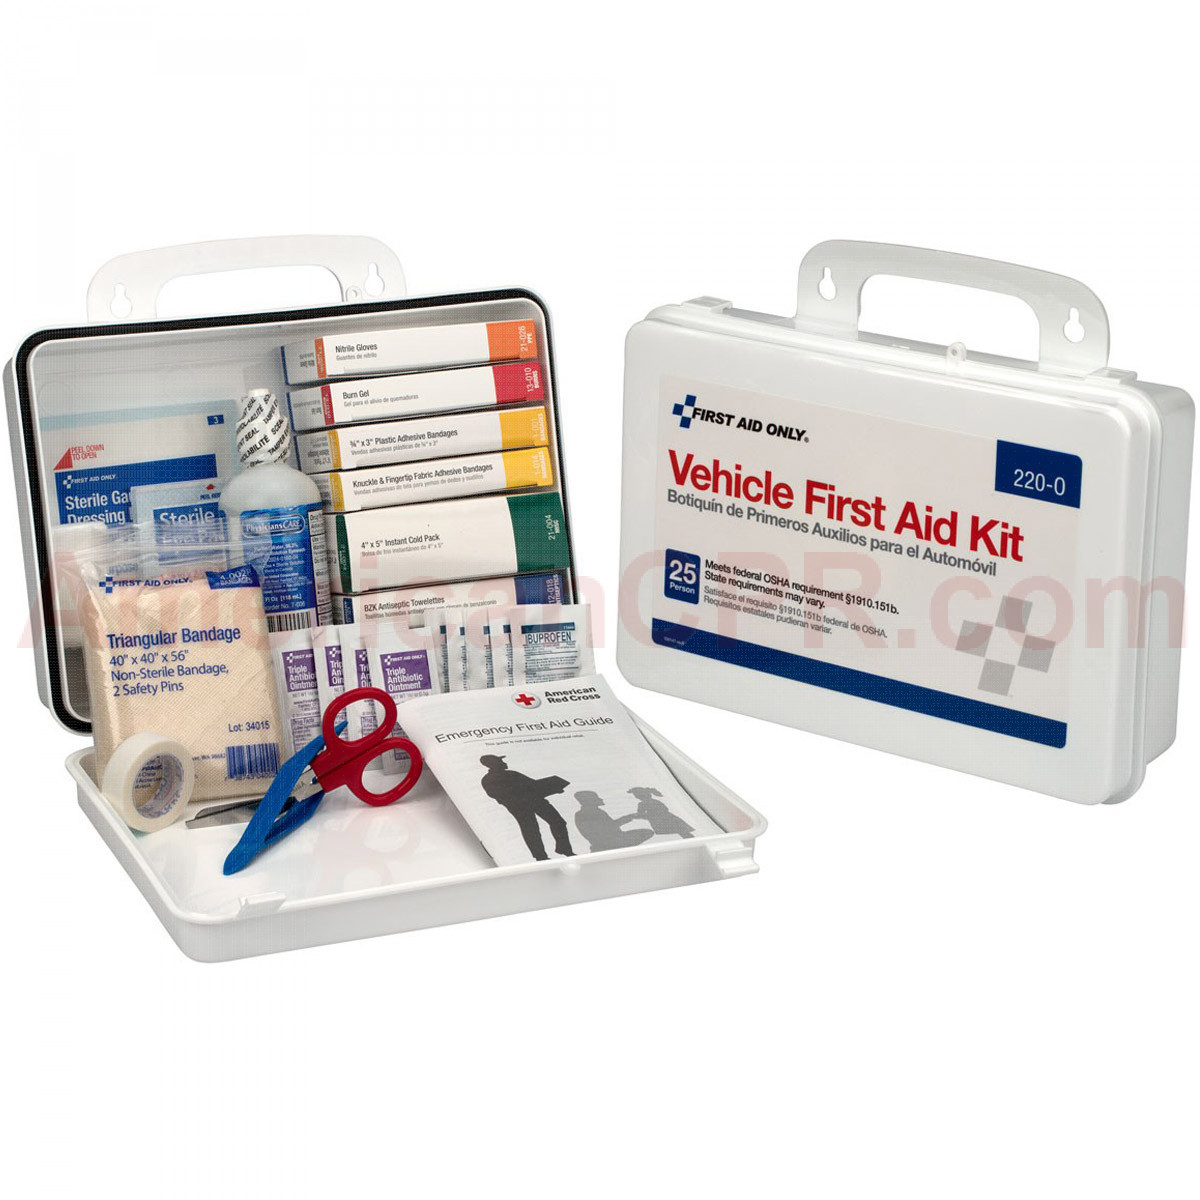 Vehicle First Aid Kit - 94 Pieces - Plastic Case w/ Gasket - First Aid Only